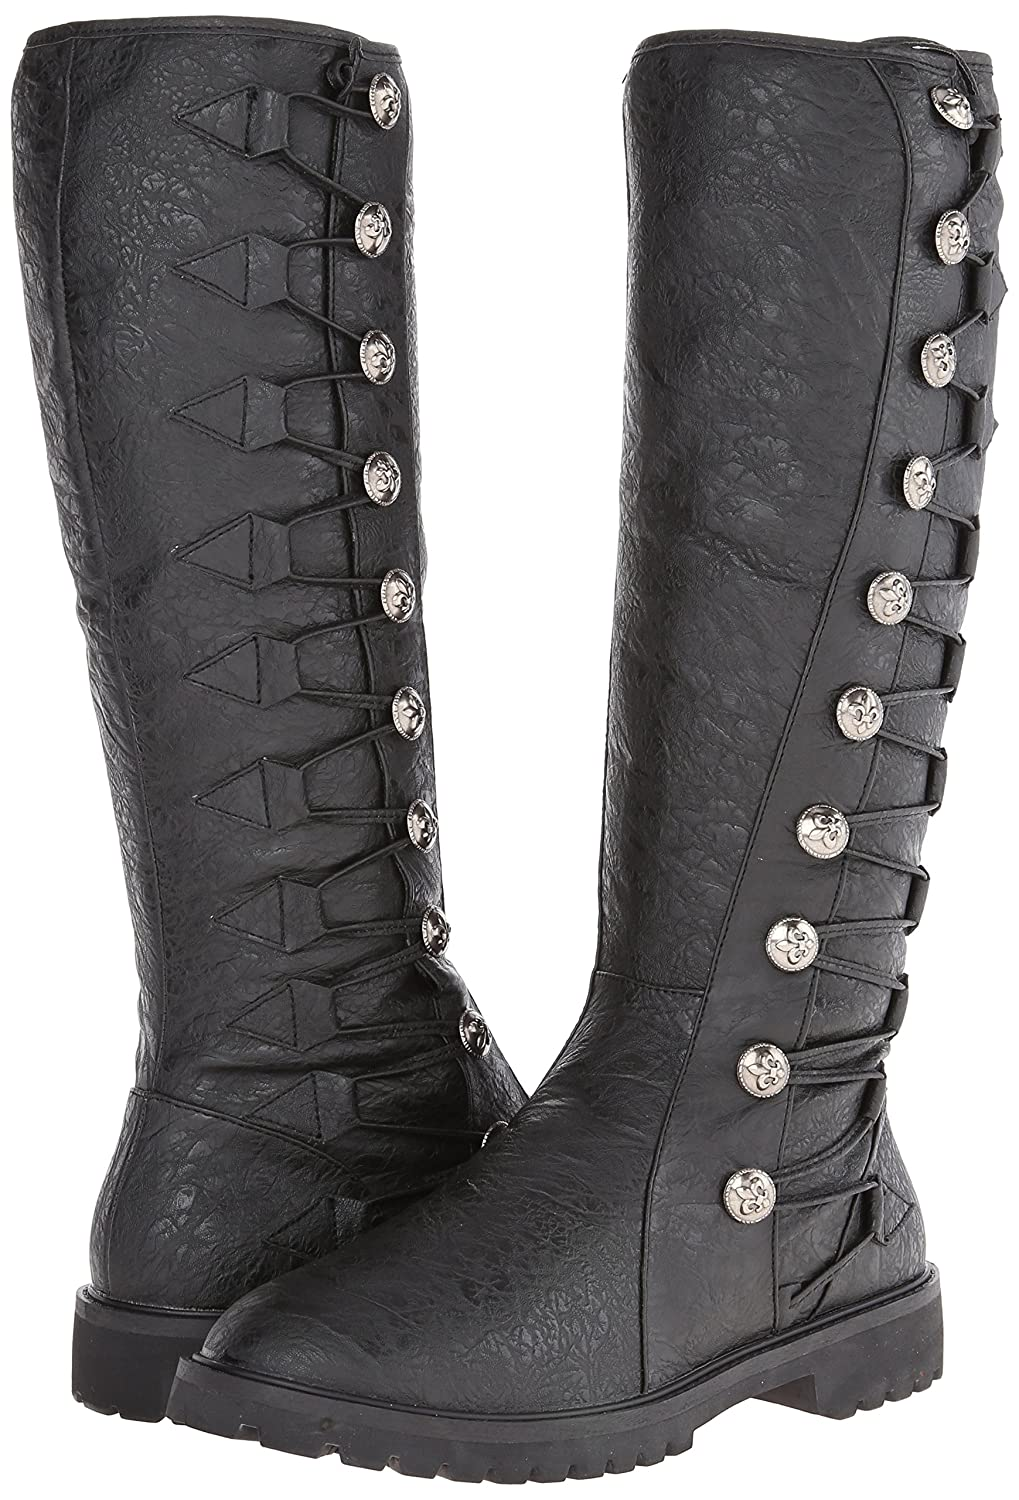 Deluxe Adult Costumes - Men's tall black button laced synthetic gotham-109 engineer boots.